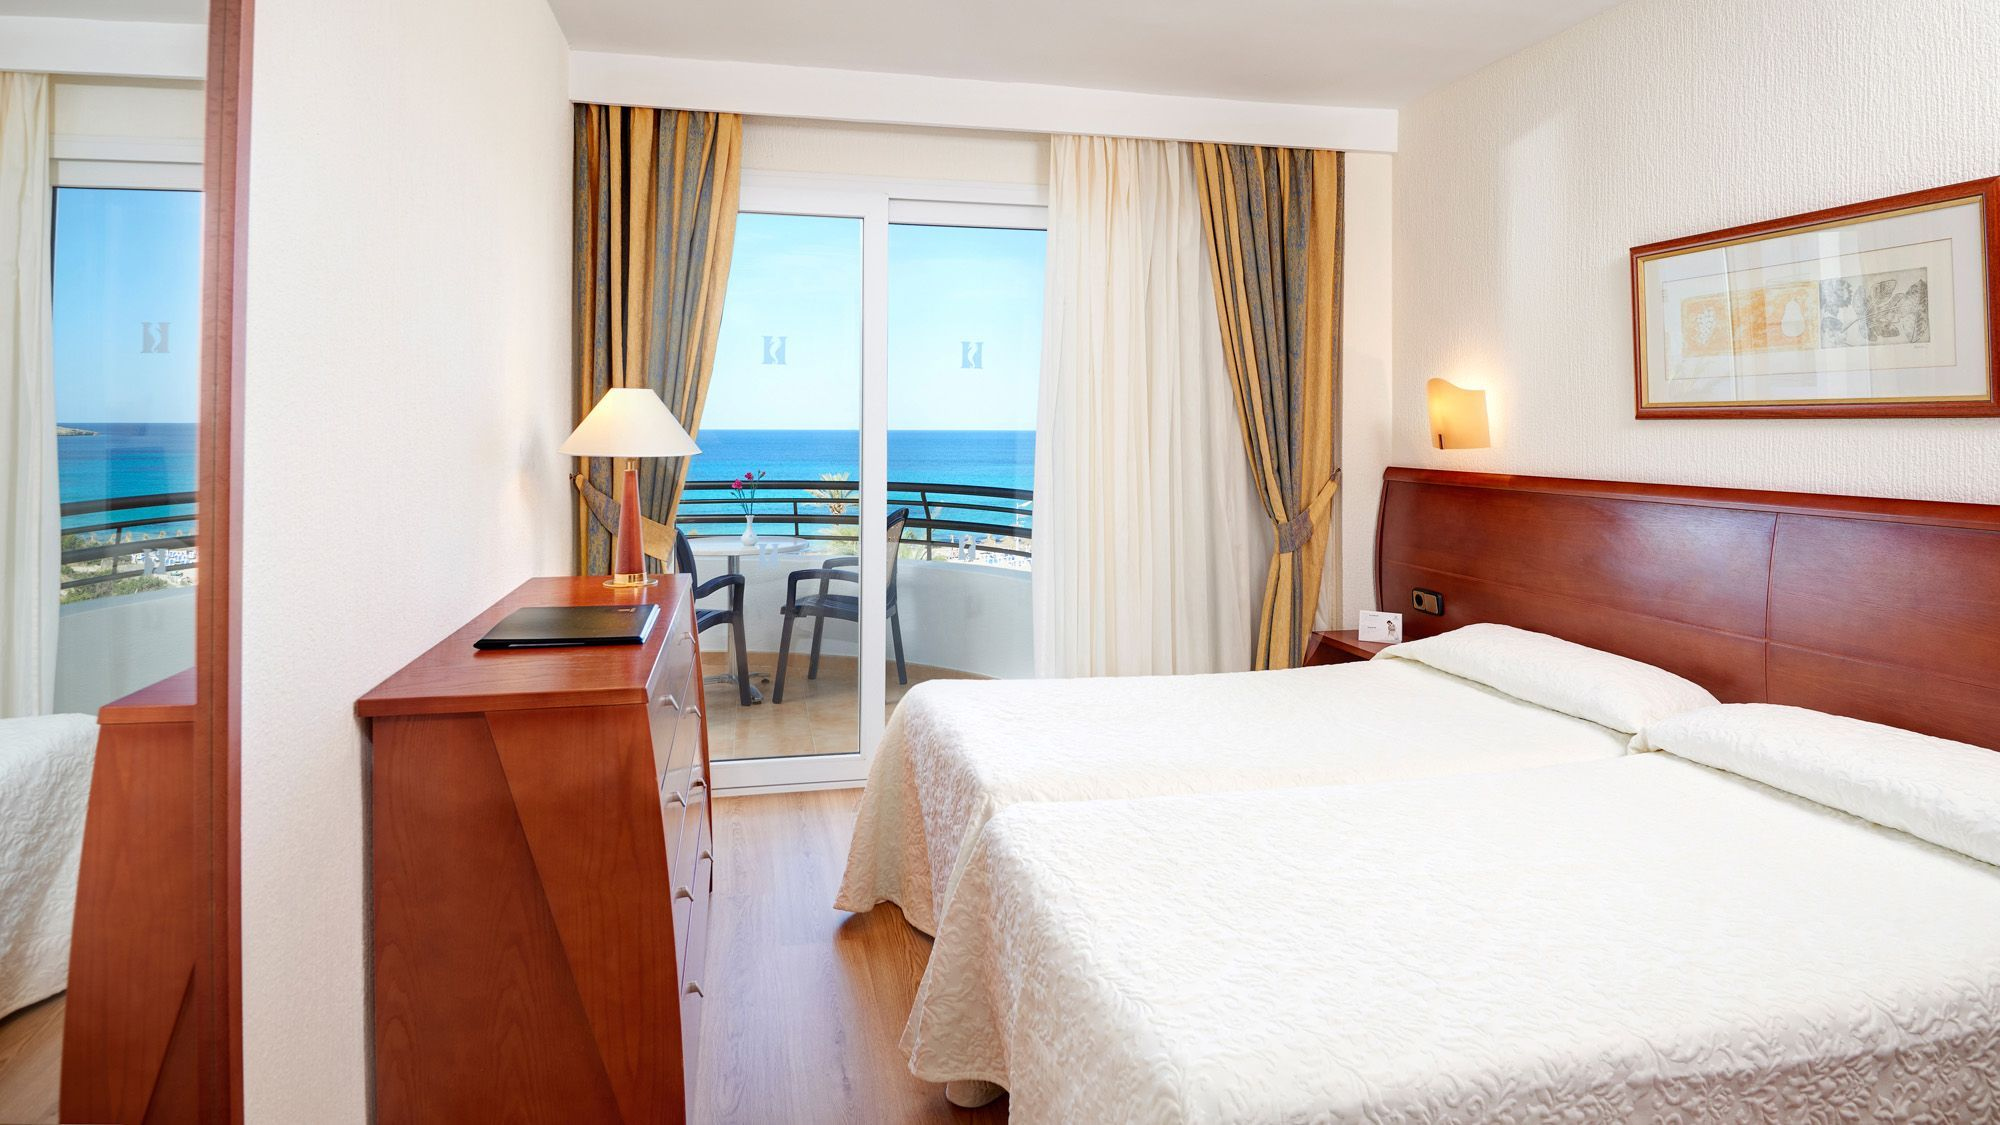 Hipotels dunas cala millor fotogalerie mallorca for Appart hotel 5 terres